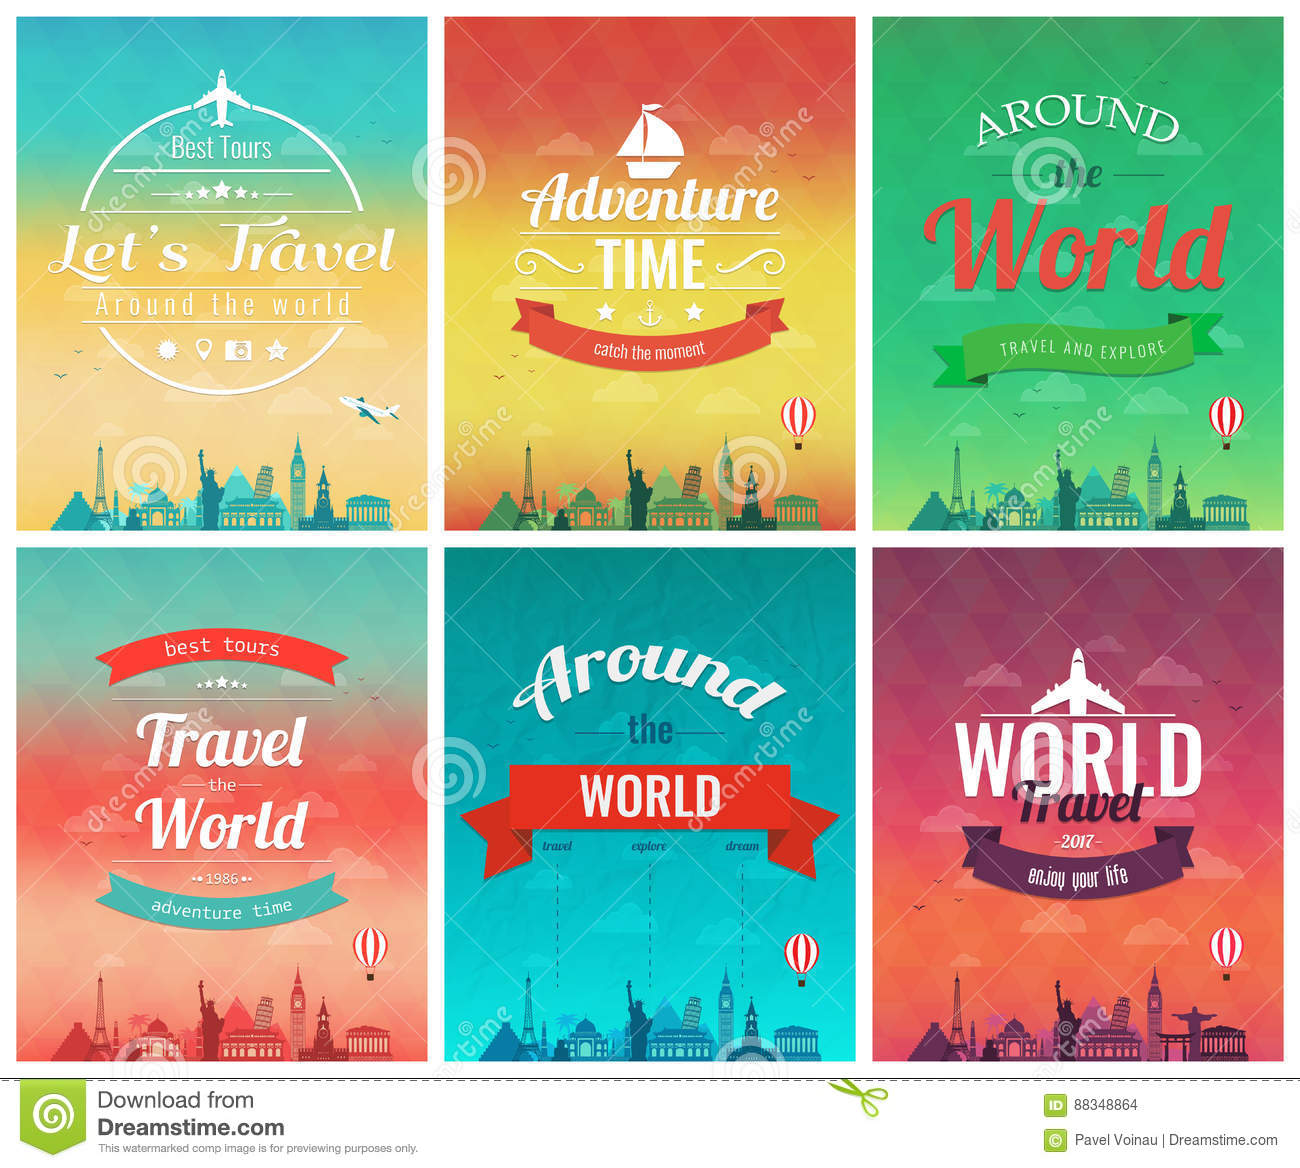 Download Travel Brochure With World Landmarks. Template Of Magazine, Poster, Book Cover, Banner, Flyer. Vector Stock Vector - Illustration of adventure, business: 88348864